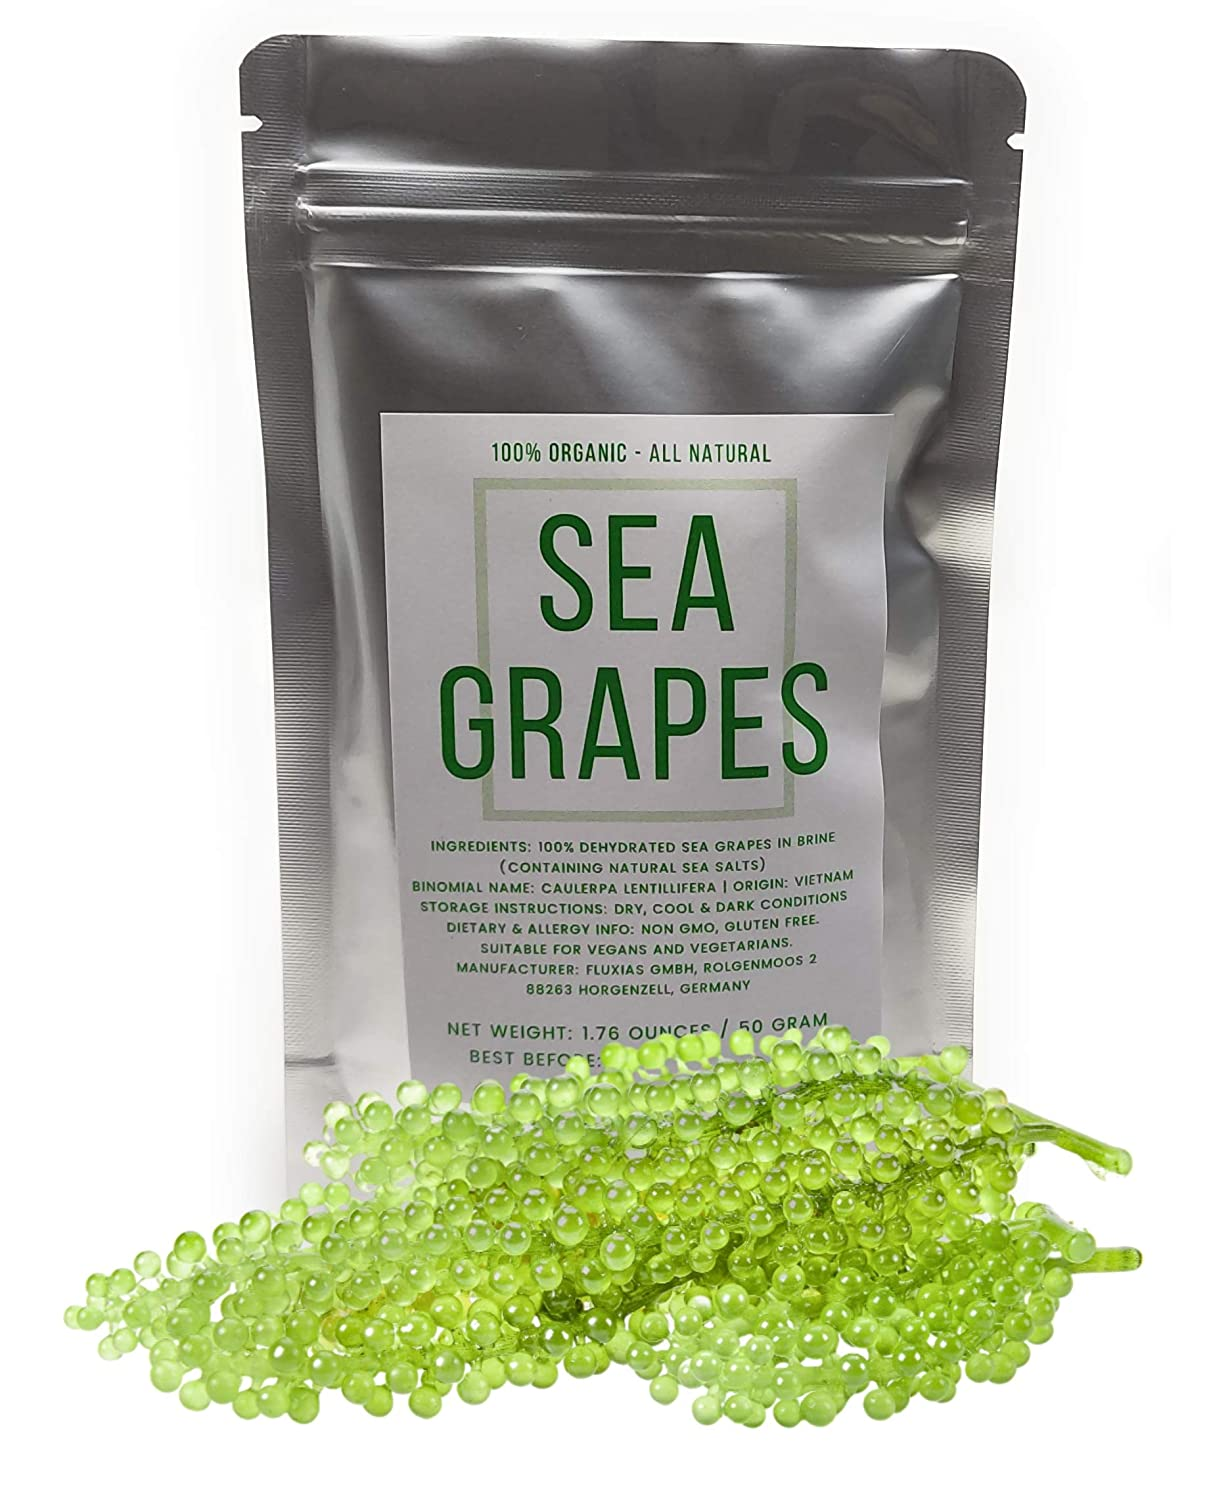 Organic Umibudo Sea Grapes - Delicious Green Caviar Seaweed - Dehydrated Seagrapes in Brine, Net weight: 1.76oz/50g - makes 1/2 pound once soaked